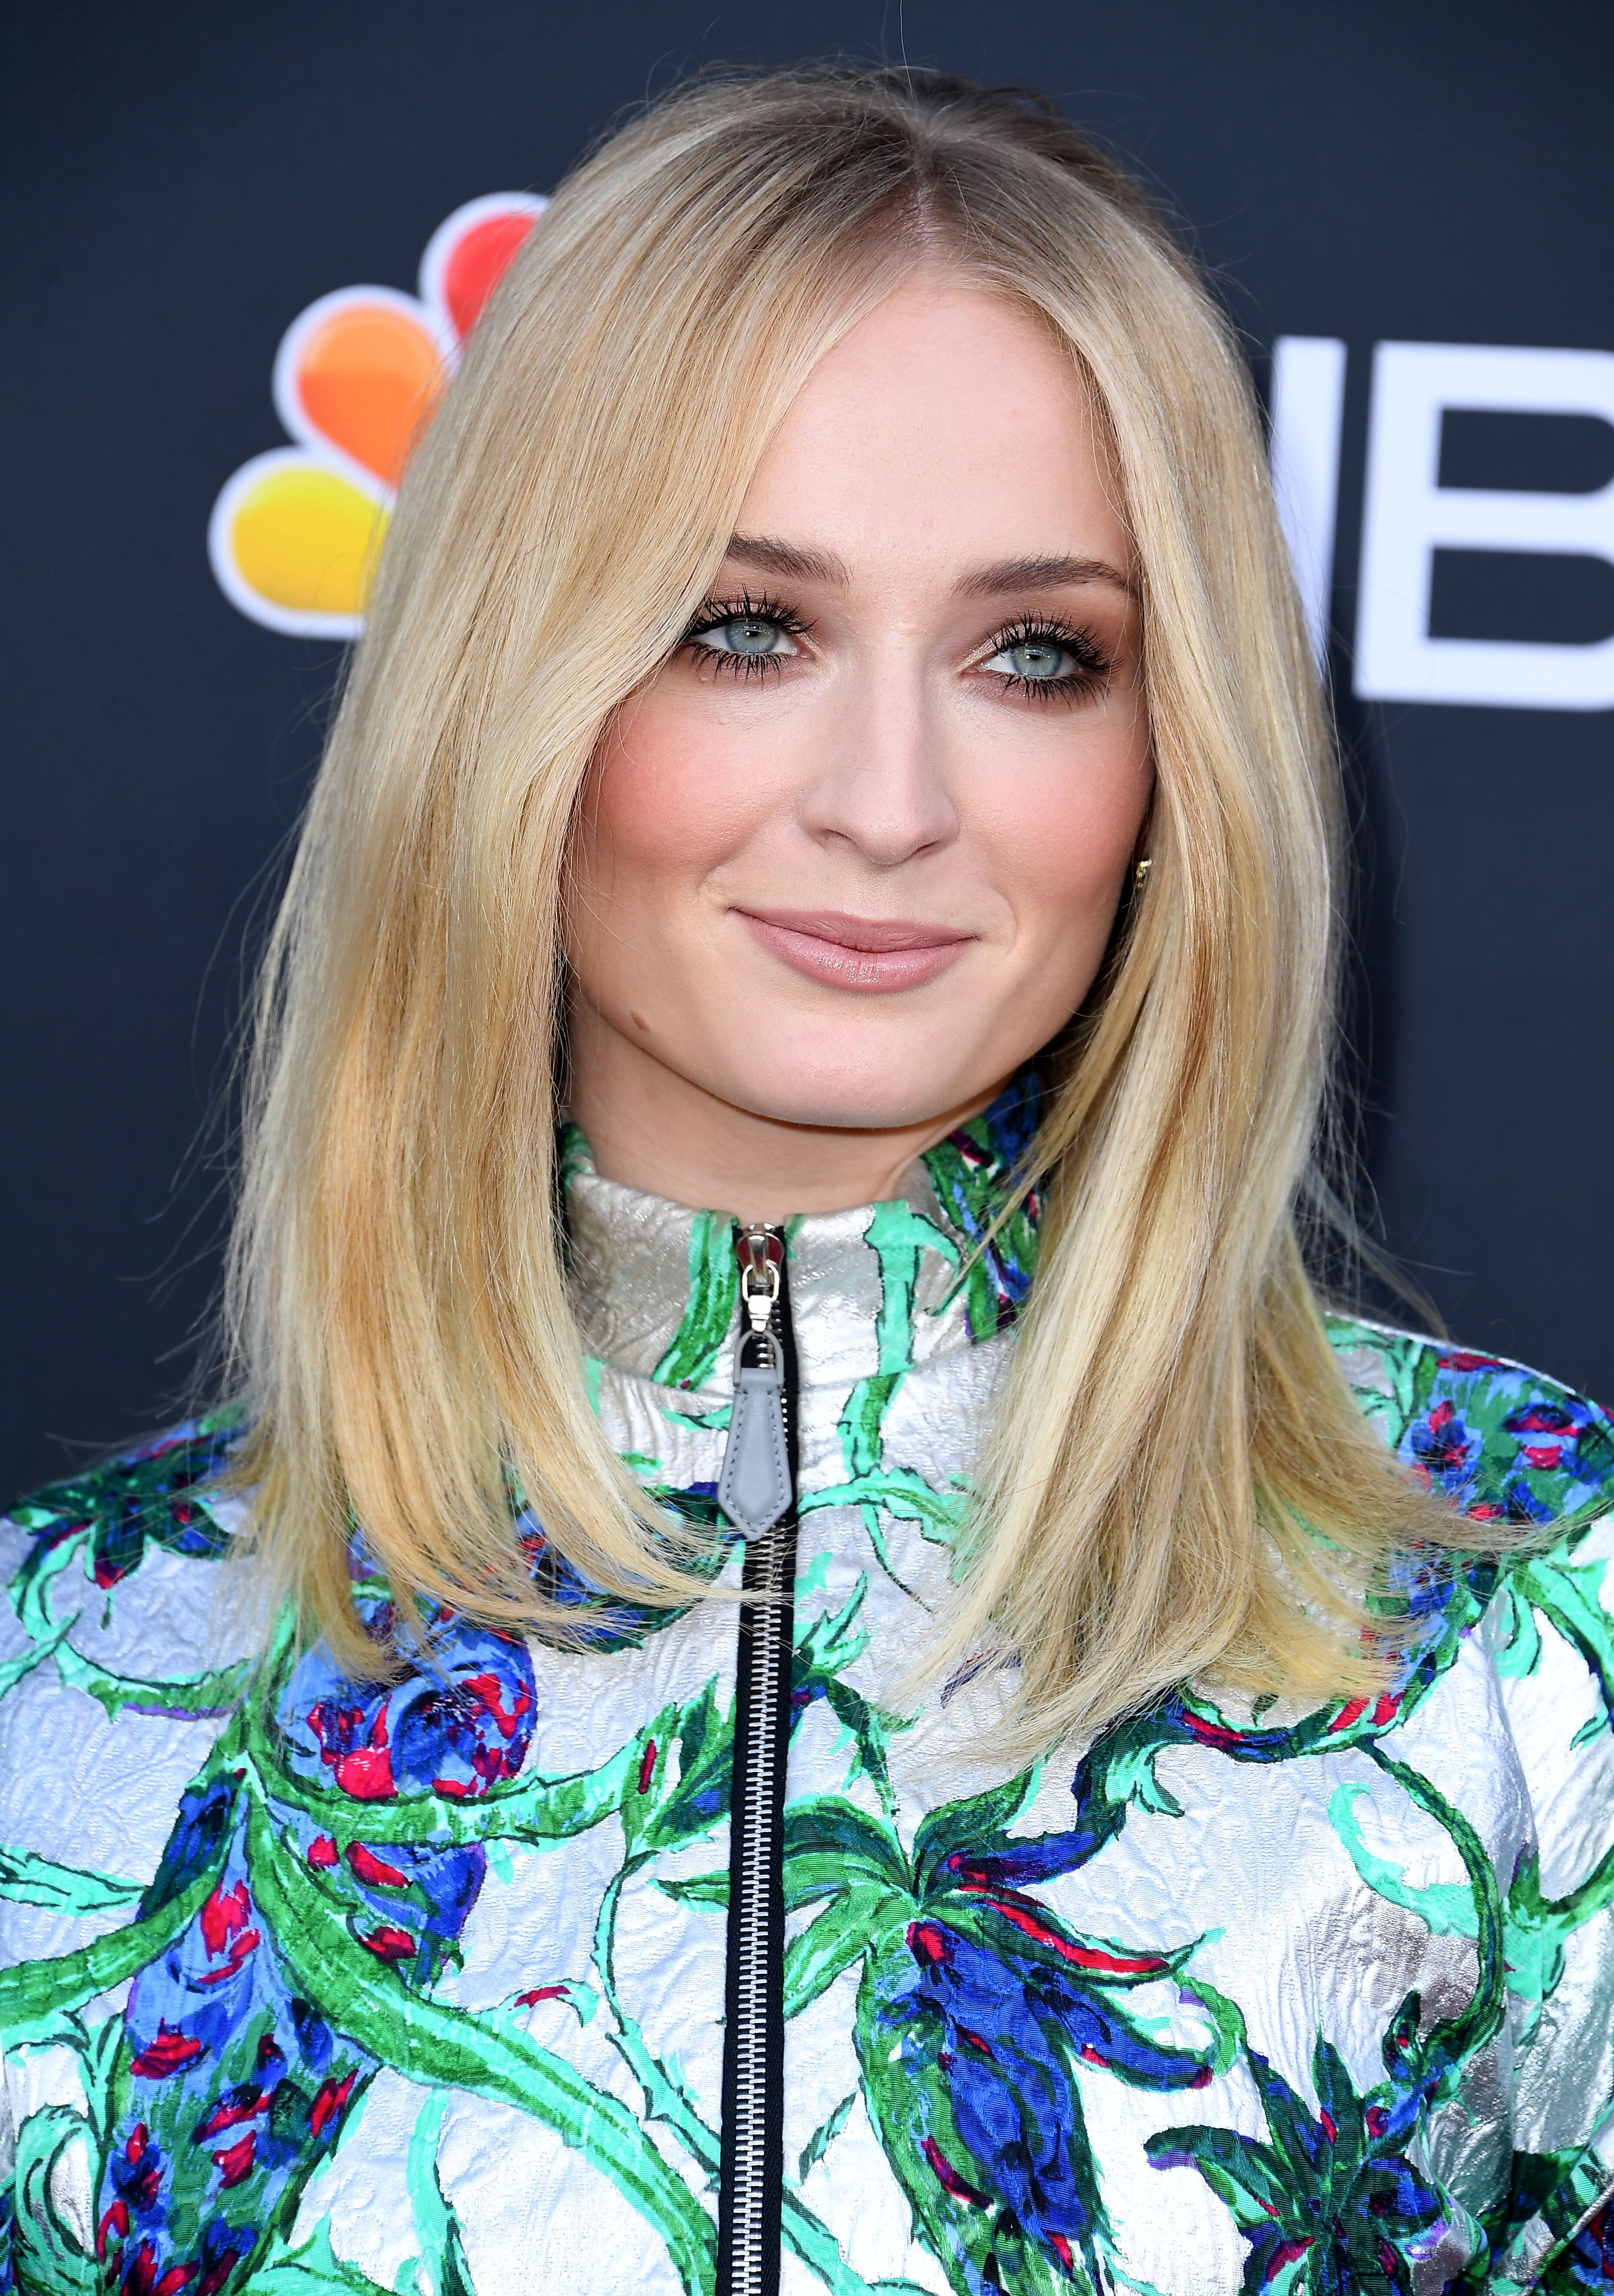 LAS VEGAS, NEVADA - MAY 01: 2019 Sophie Turner arrives at the Billboard Music Awards at MGM Grand Garden Arena on May 01, 2019 in Las Vegas, Nevada. (Photo by Steve Granitz/WireImage)